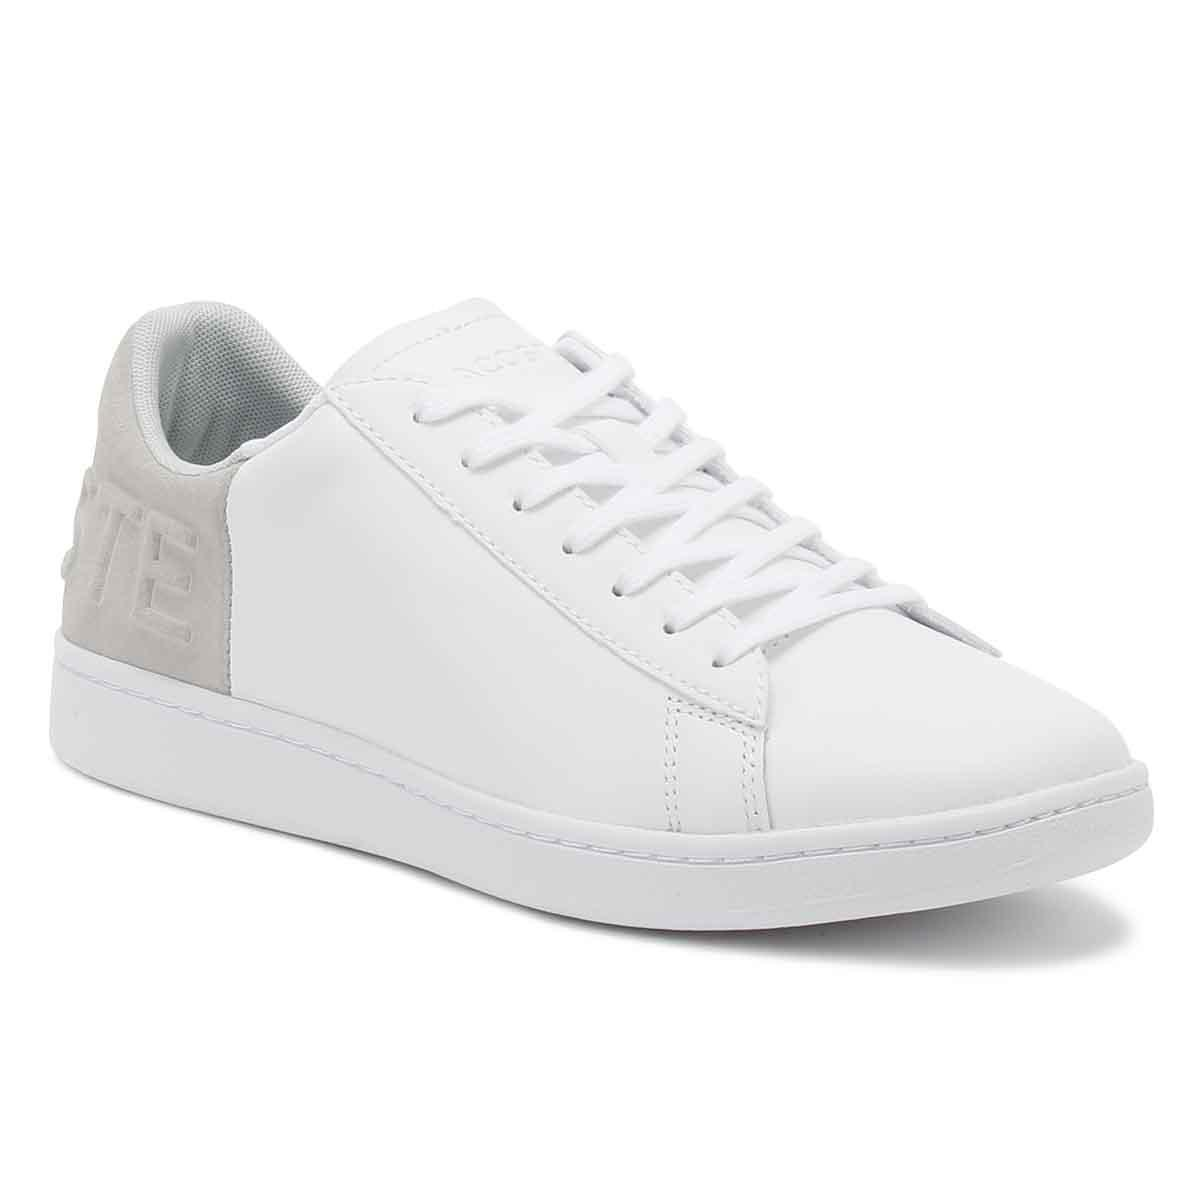 7581b9638900 Lyst - Lacoste Womens White   Light Grey Carnaby Evo 318 3 Trainers ...